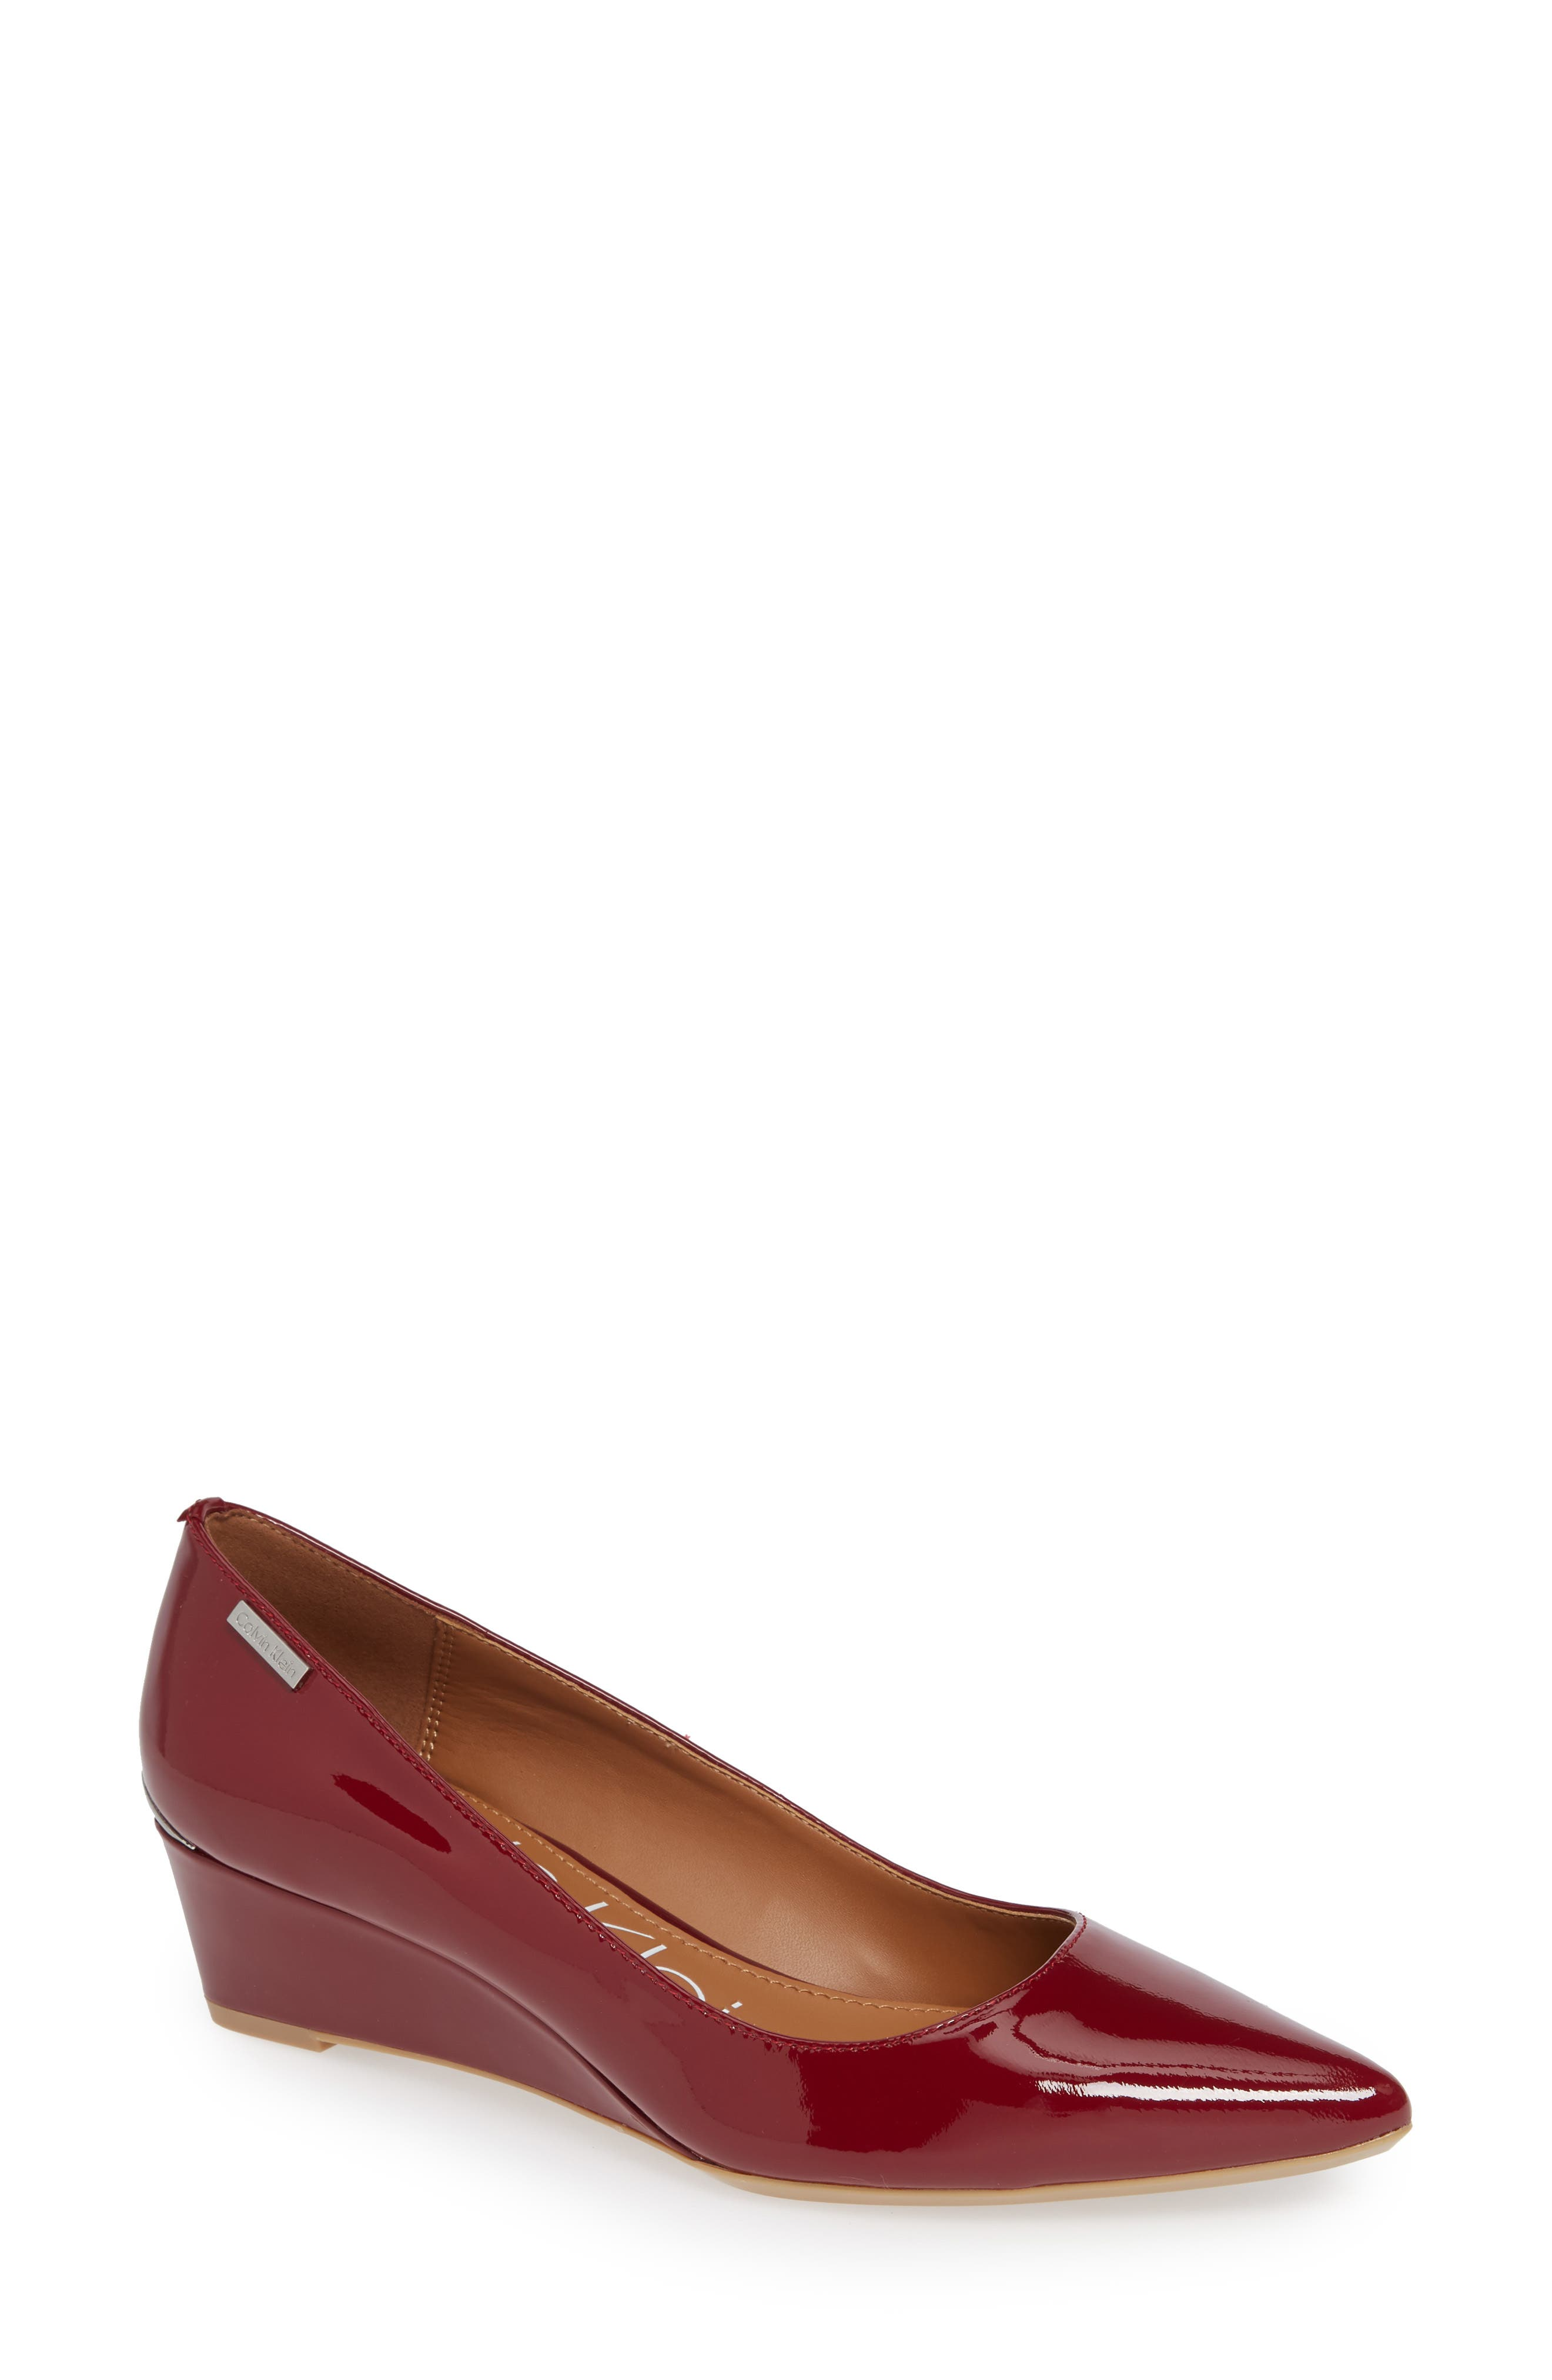 'Germina' Pointy Toe Wedge,                             Main thumbnail 1, color,                             RED ROCK PATENT